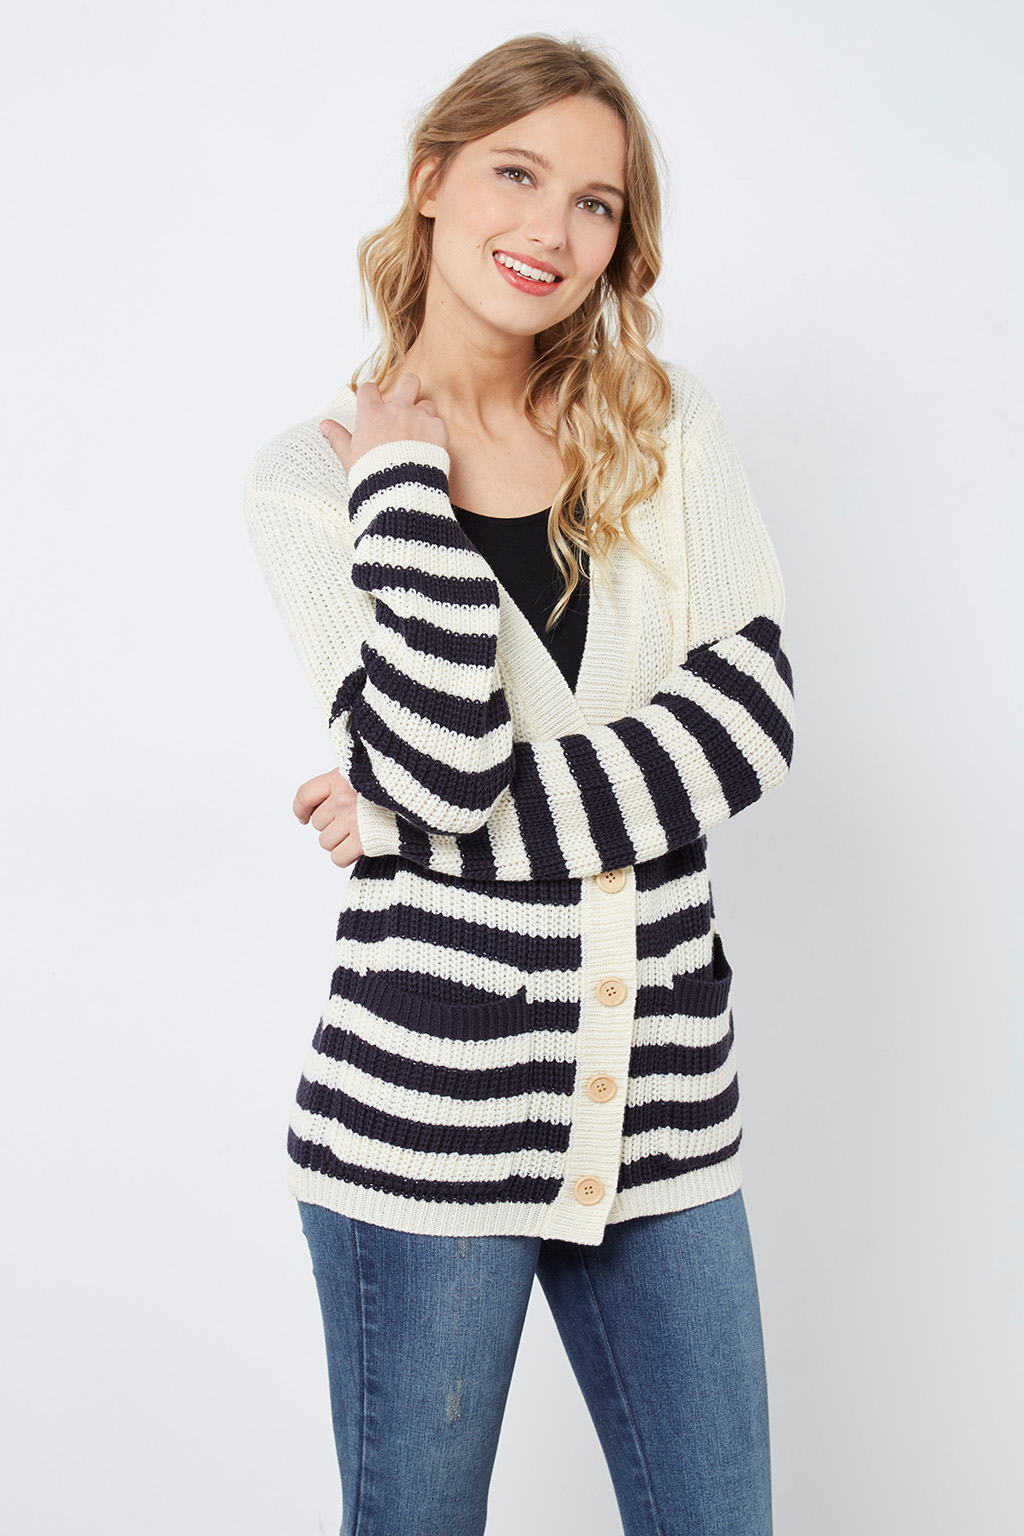 Cardigan en grosse maille #collectionIRL